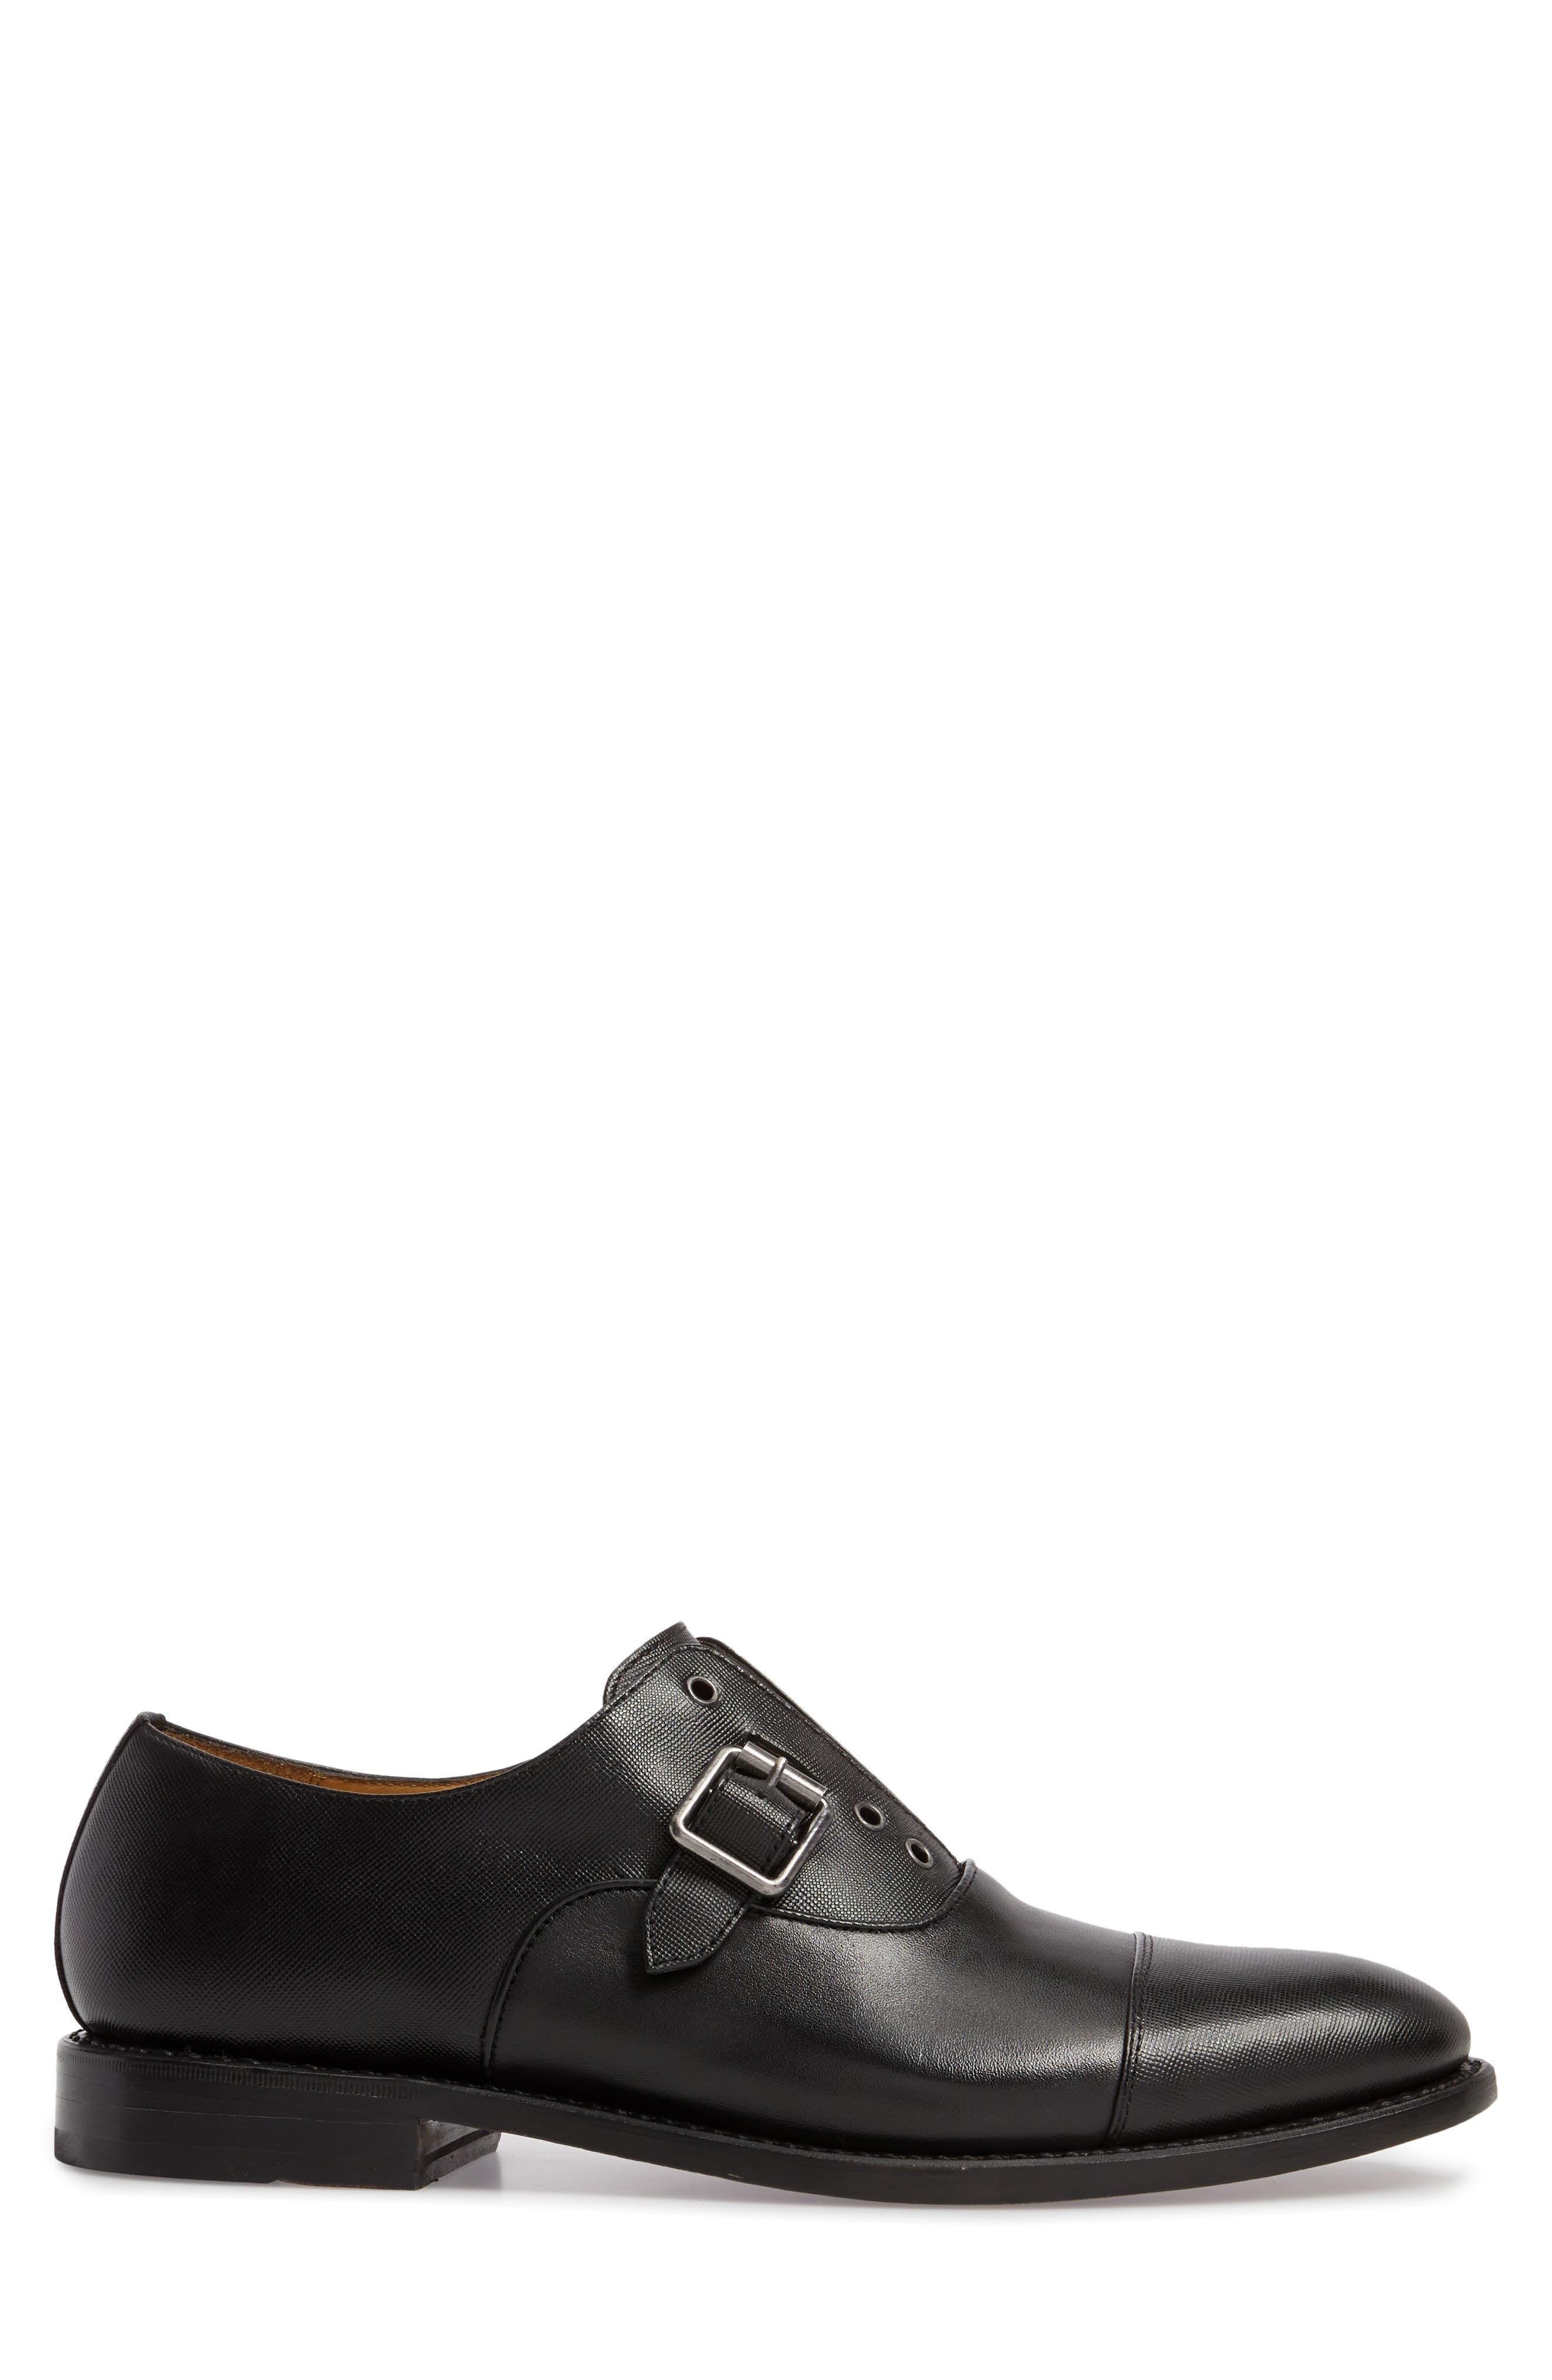 Brandon Cap Toe Oxford,                             Alternate thumbnail 3, color,                             001